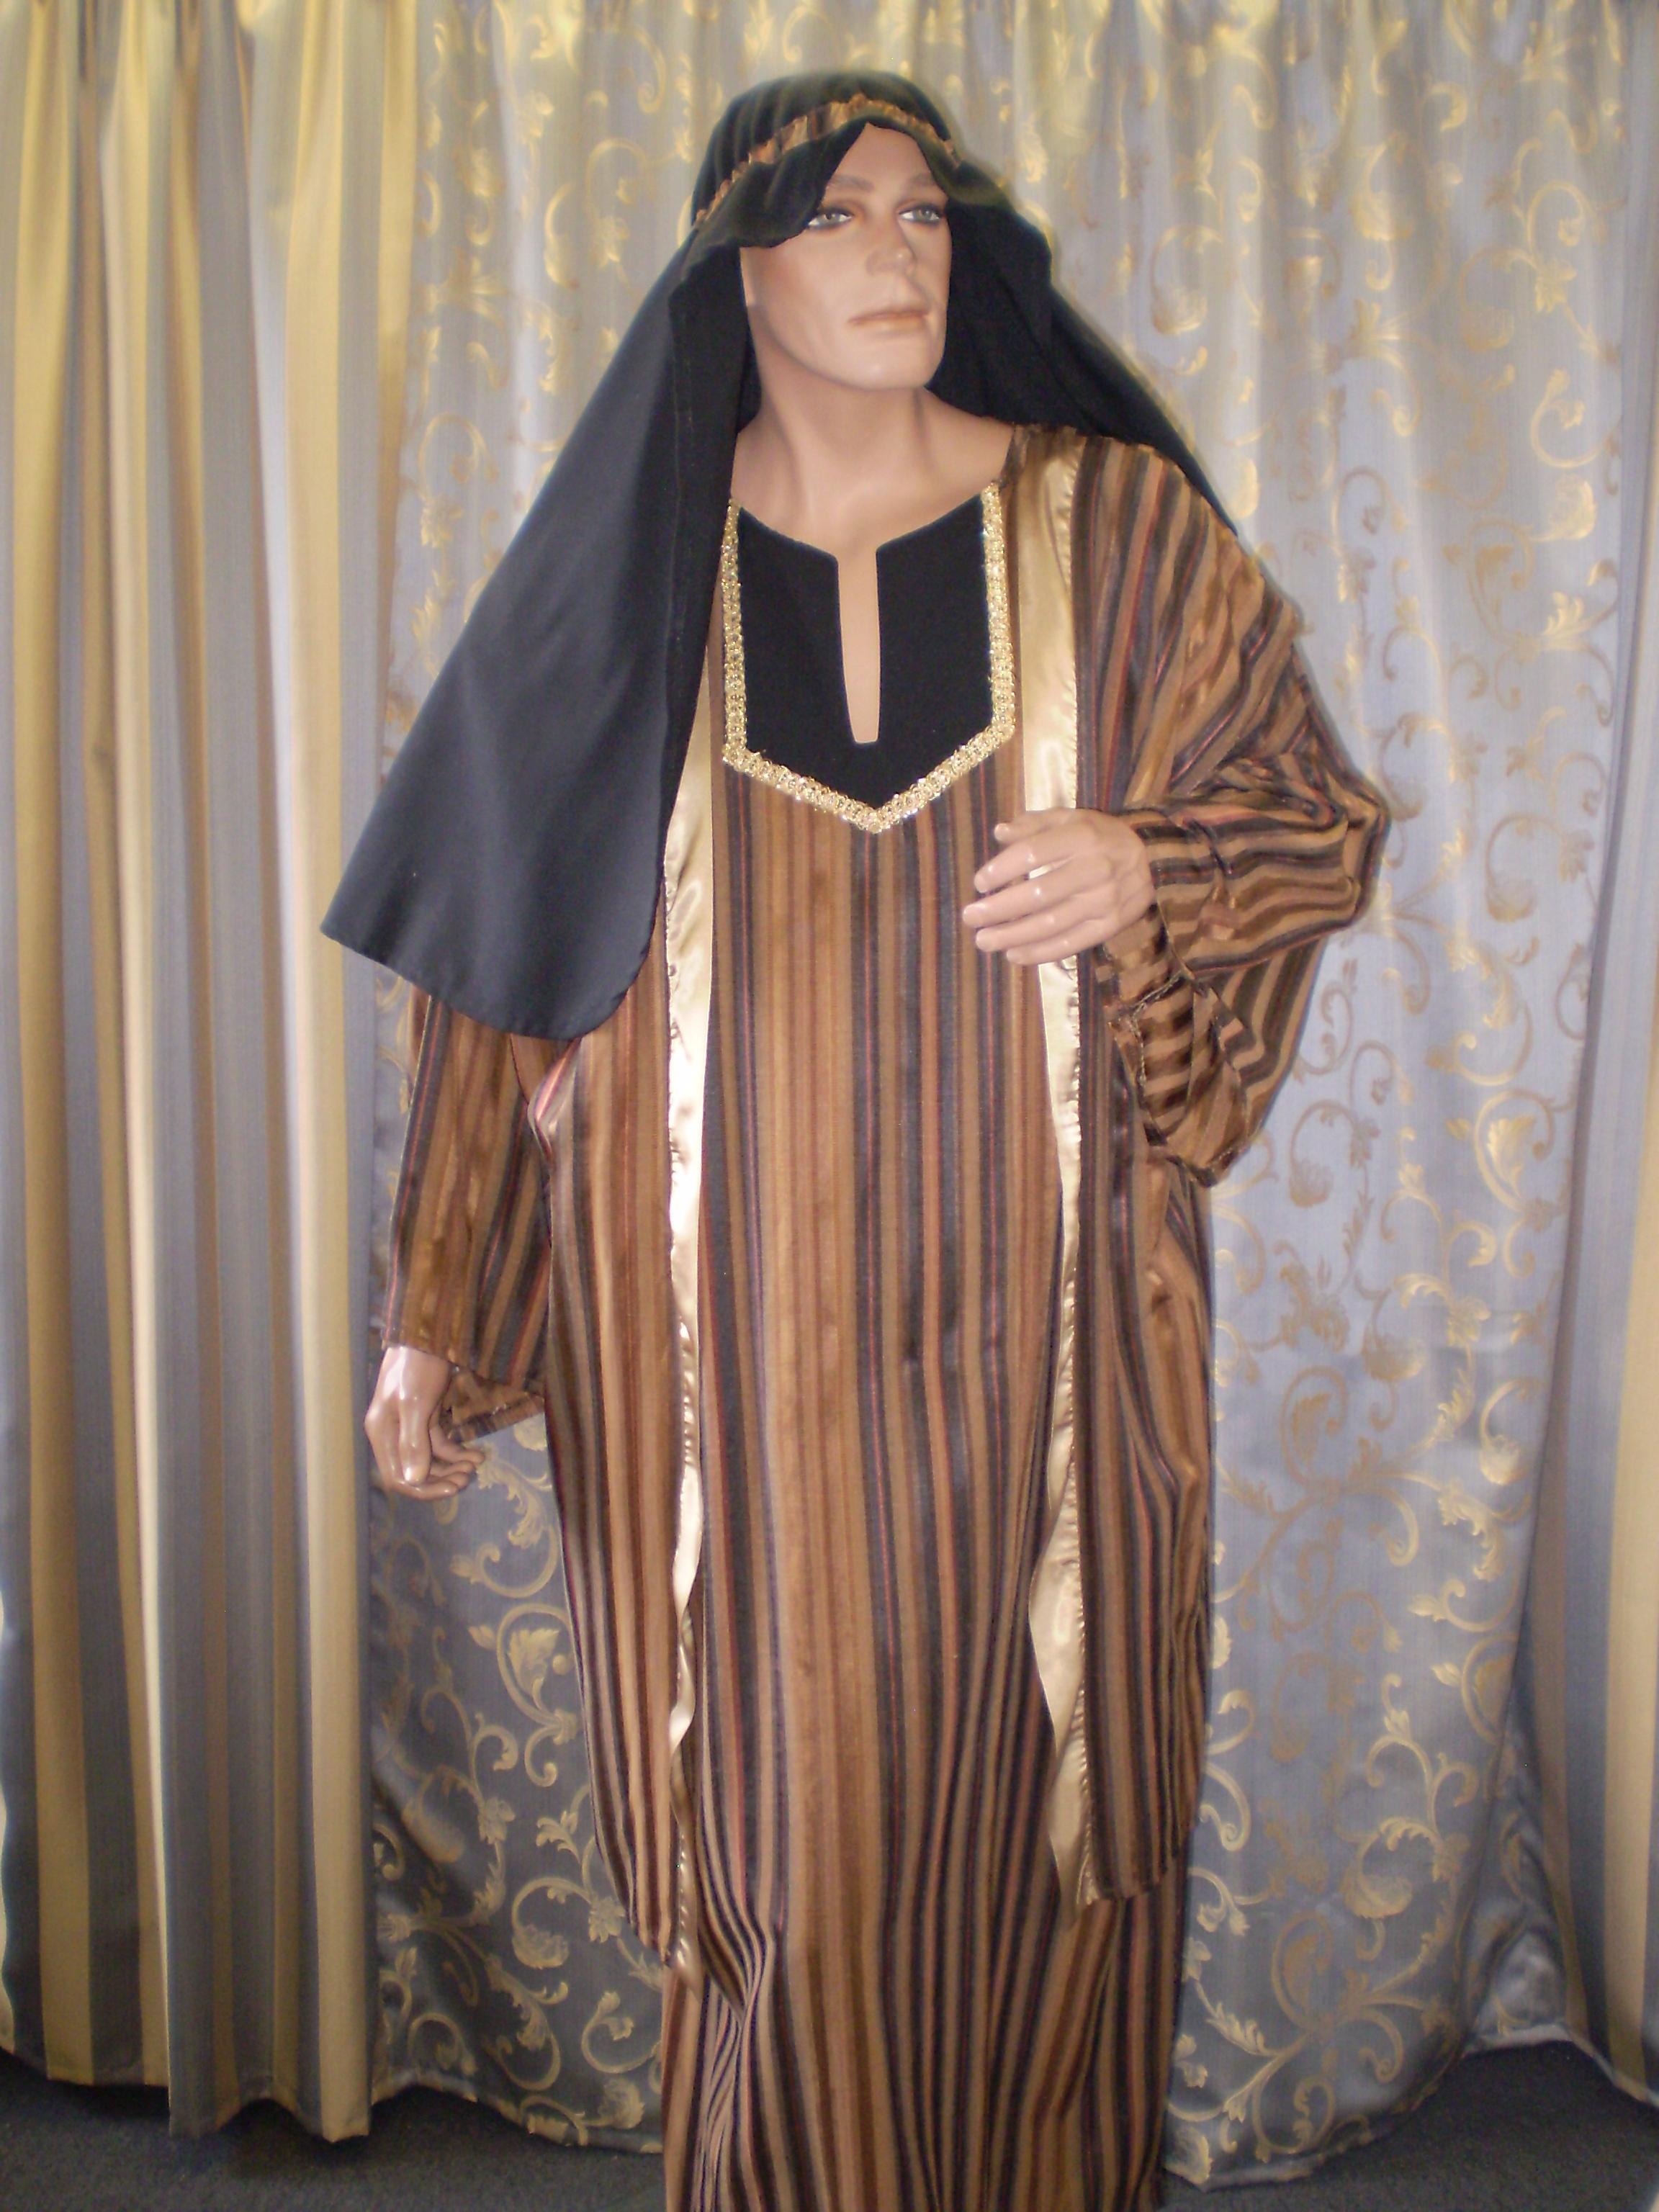 Arabian nights costumes from harem girls to sheikhs prefer to buy your arabian nights costumes solutioingenieria Images